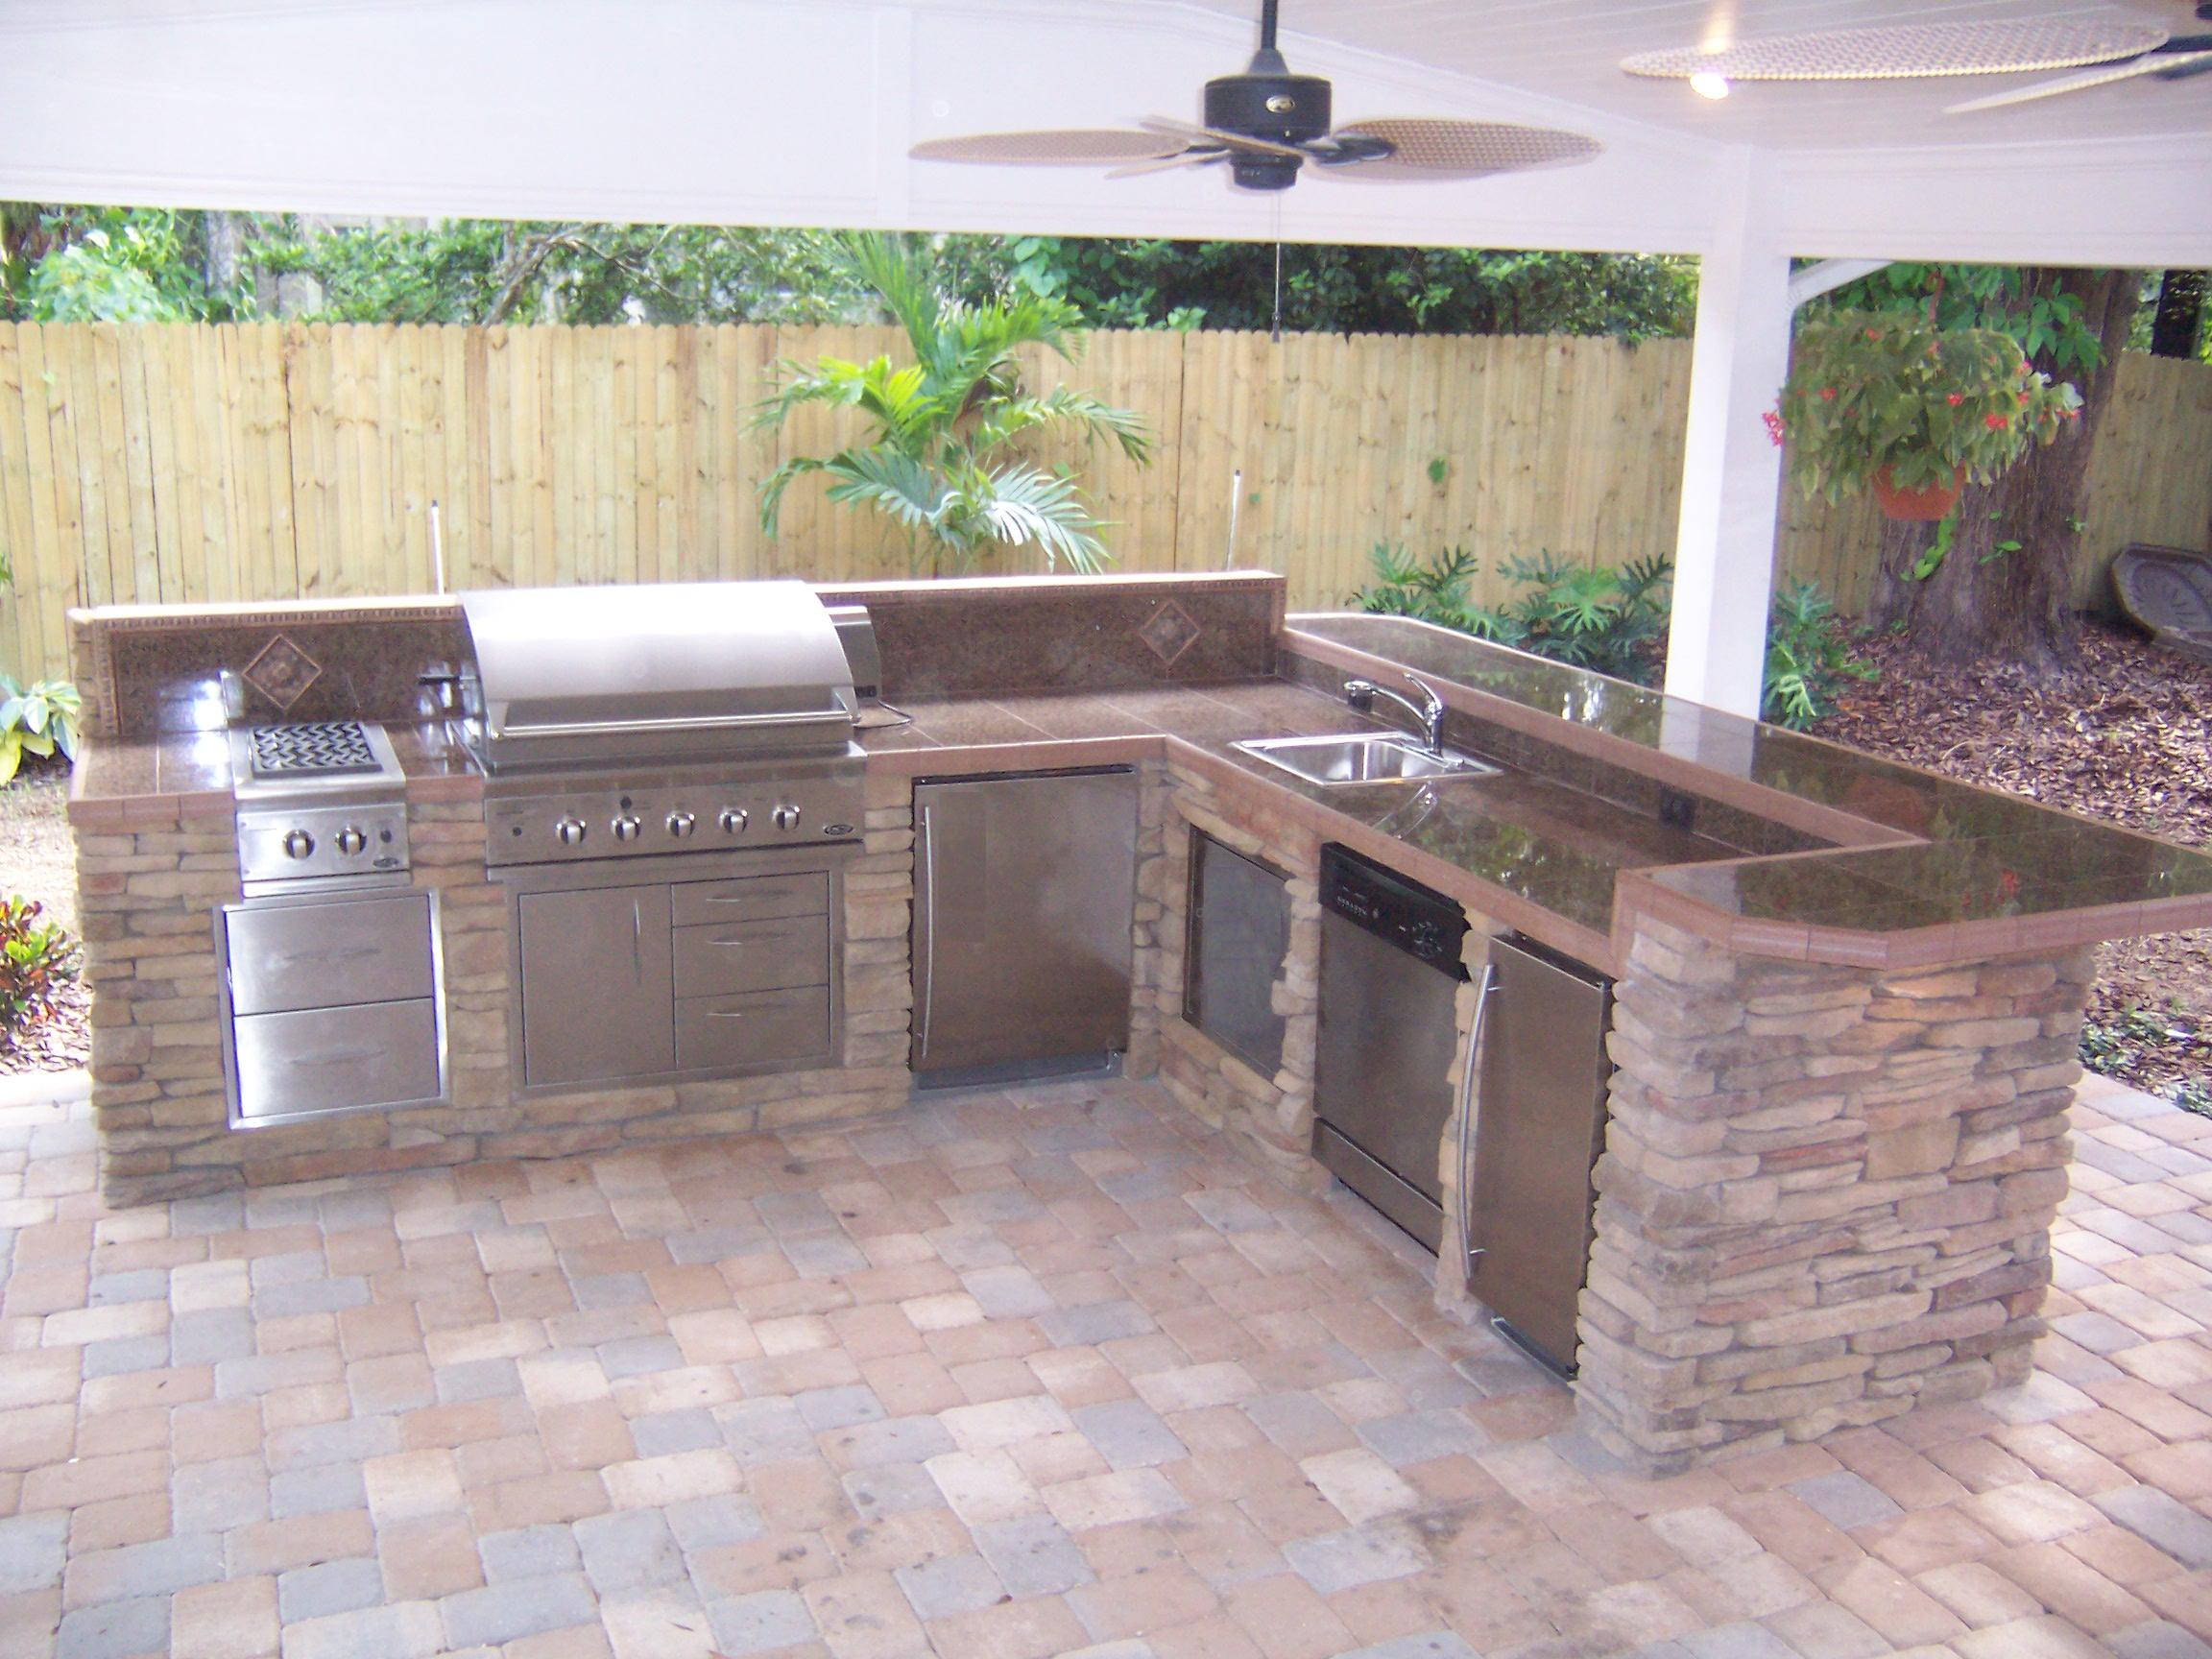 Outdoor kitchen creations orlando wow blog for Outdoor kitchens orlando